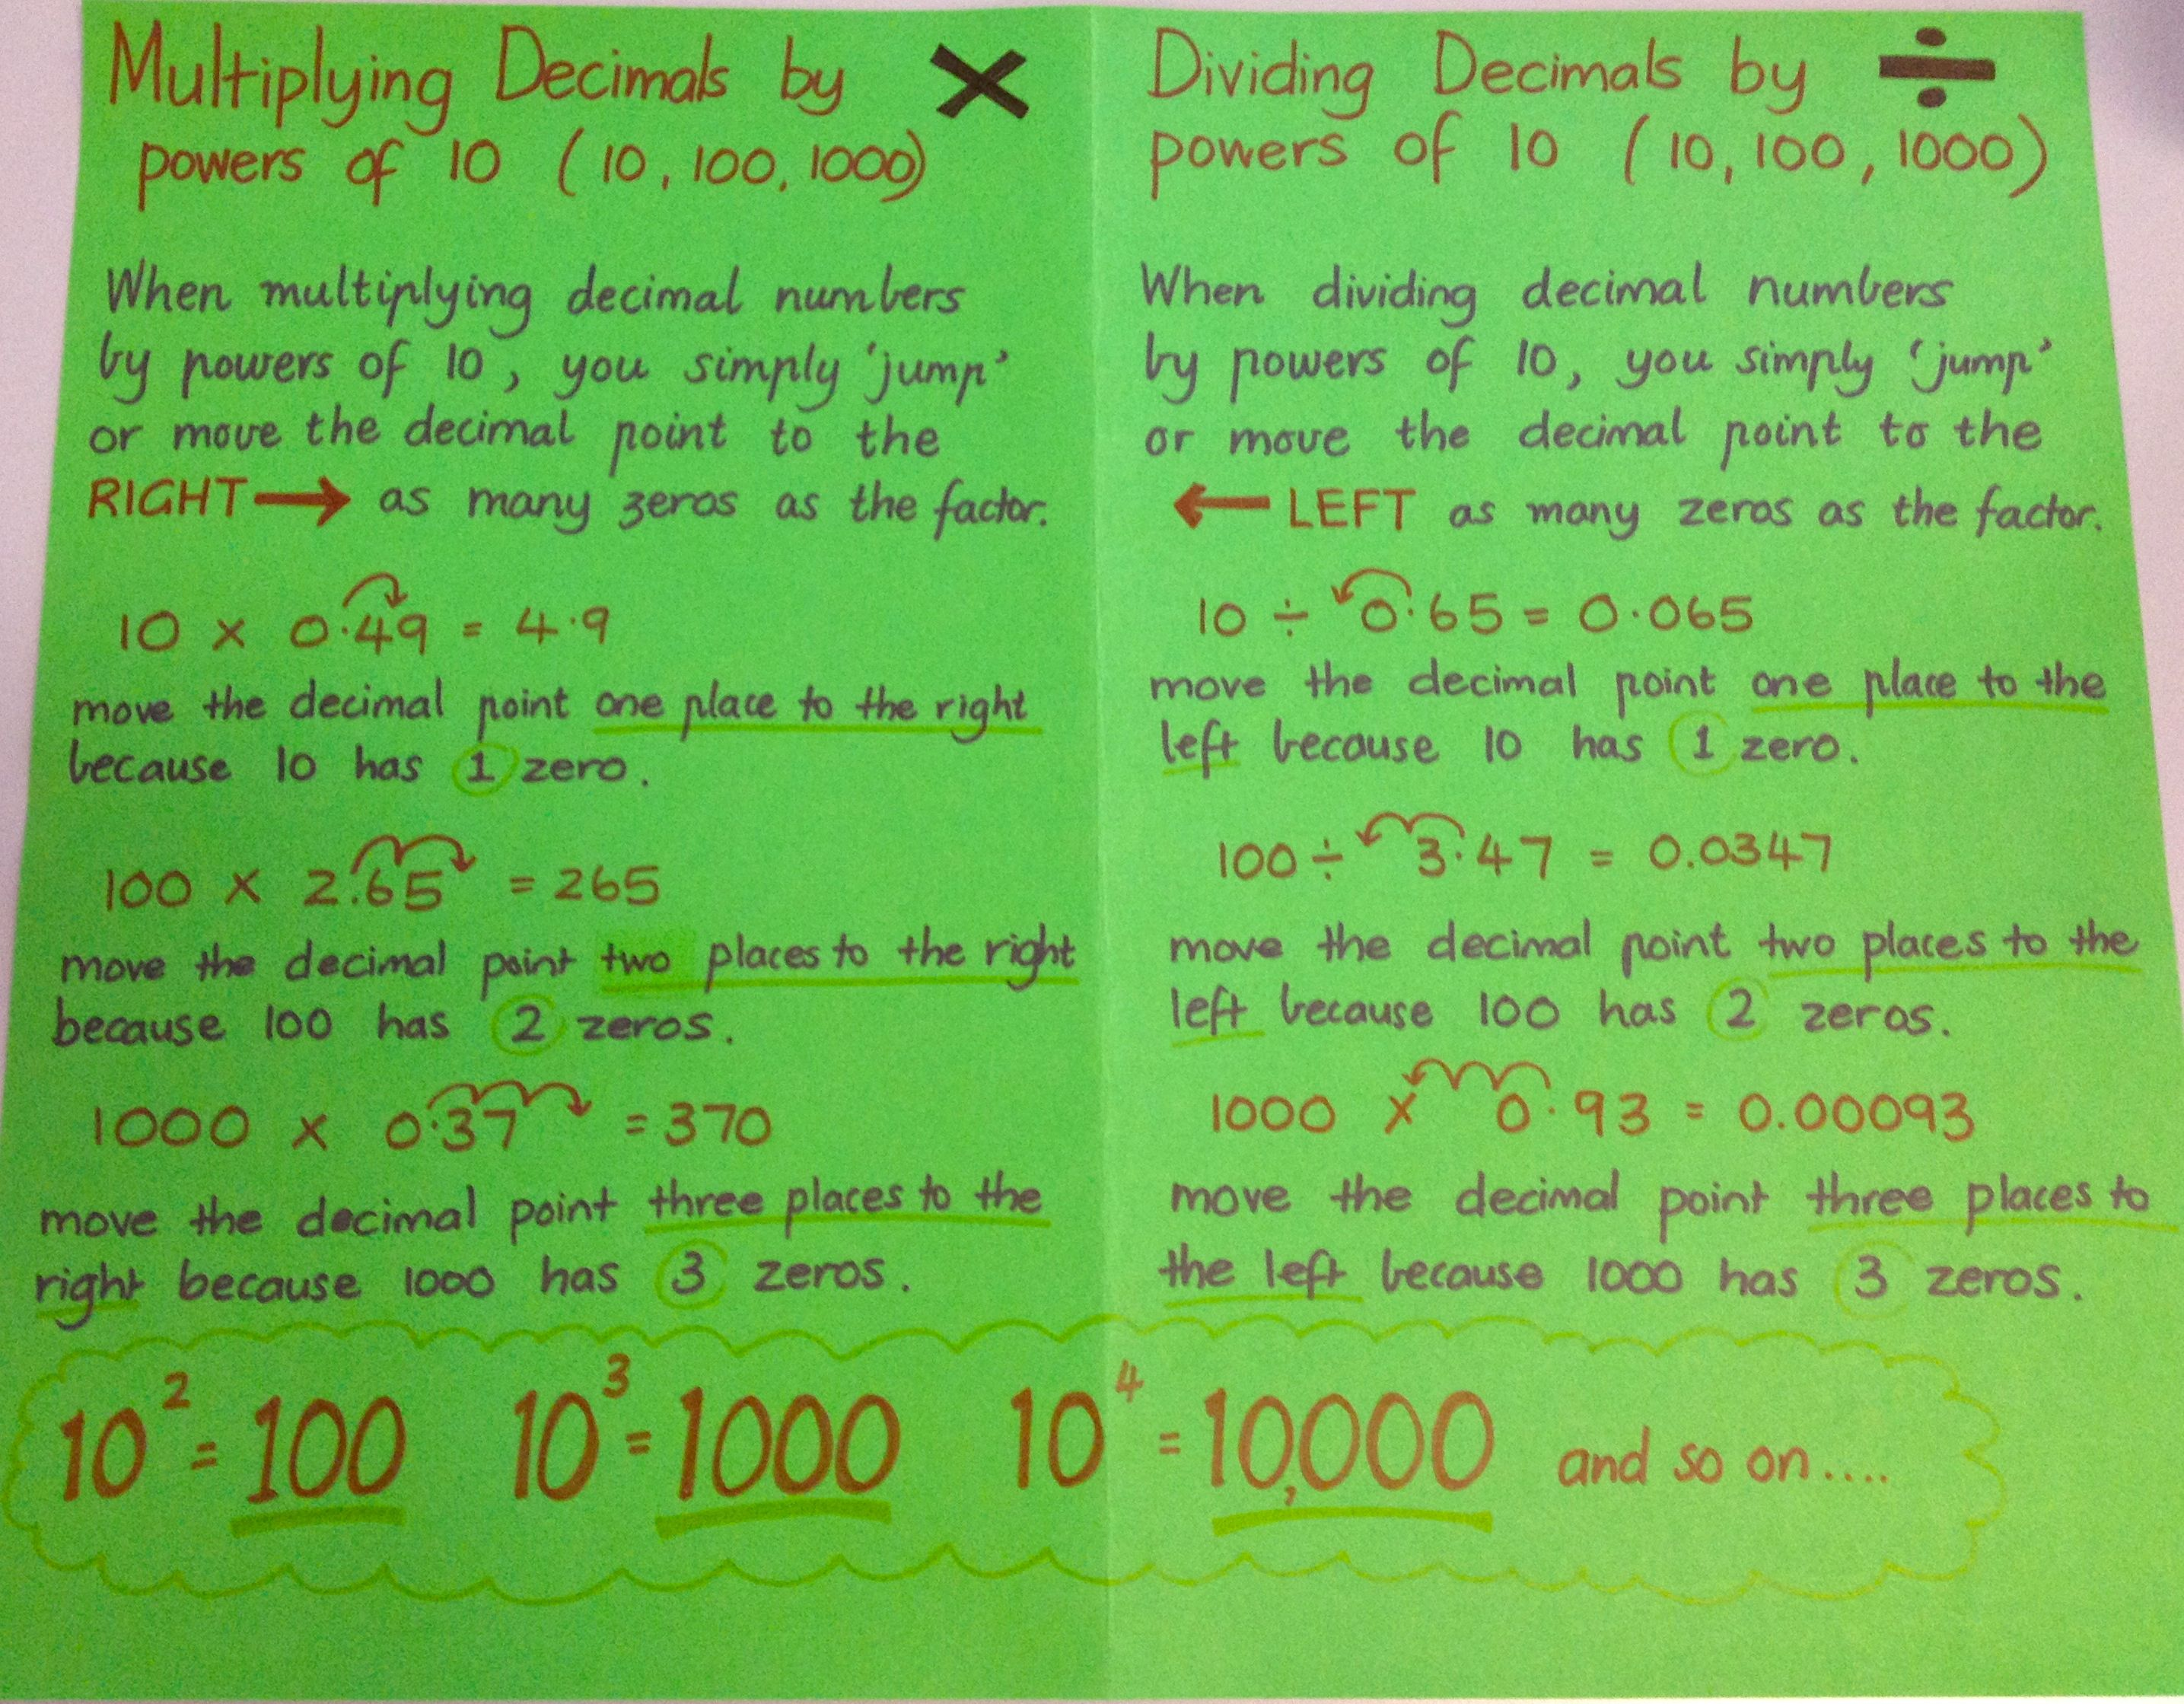 Mutiplication And Division Of Decimals By Powers Of 10